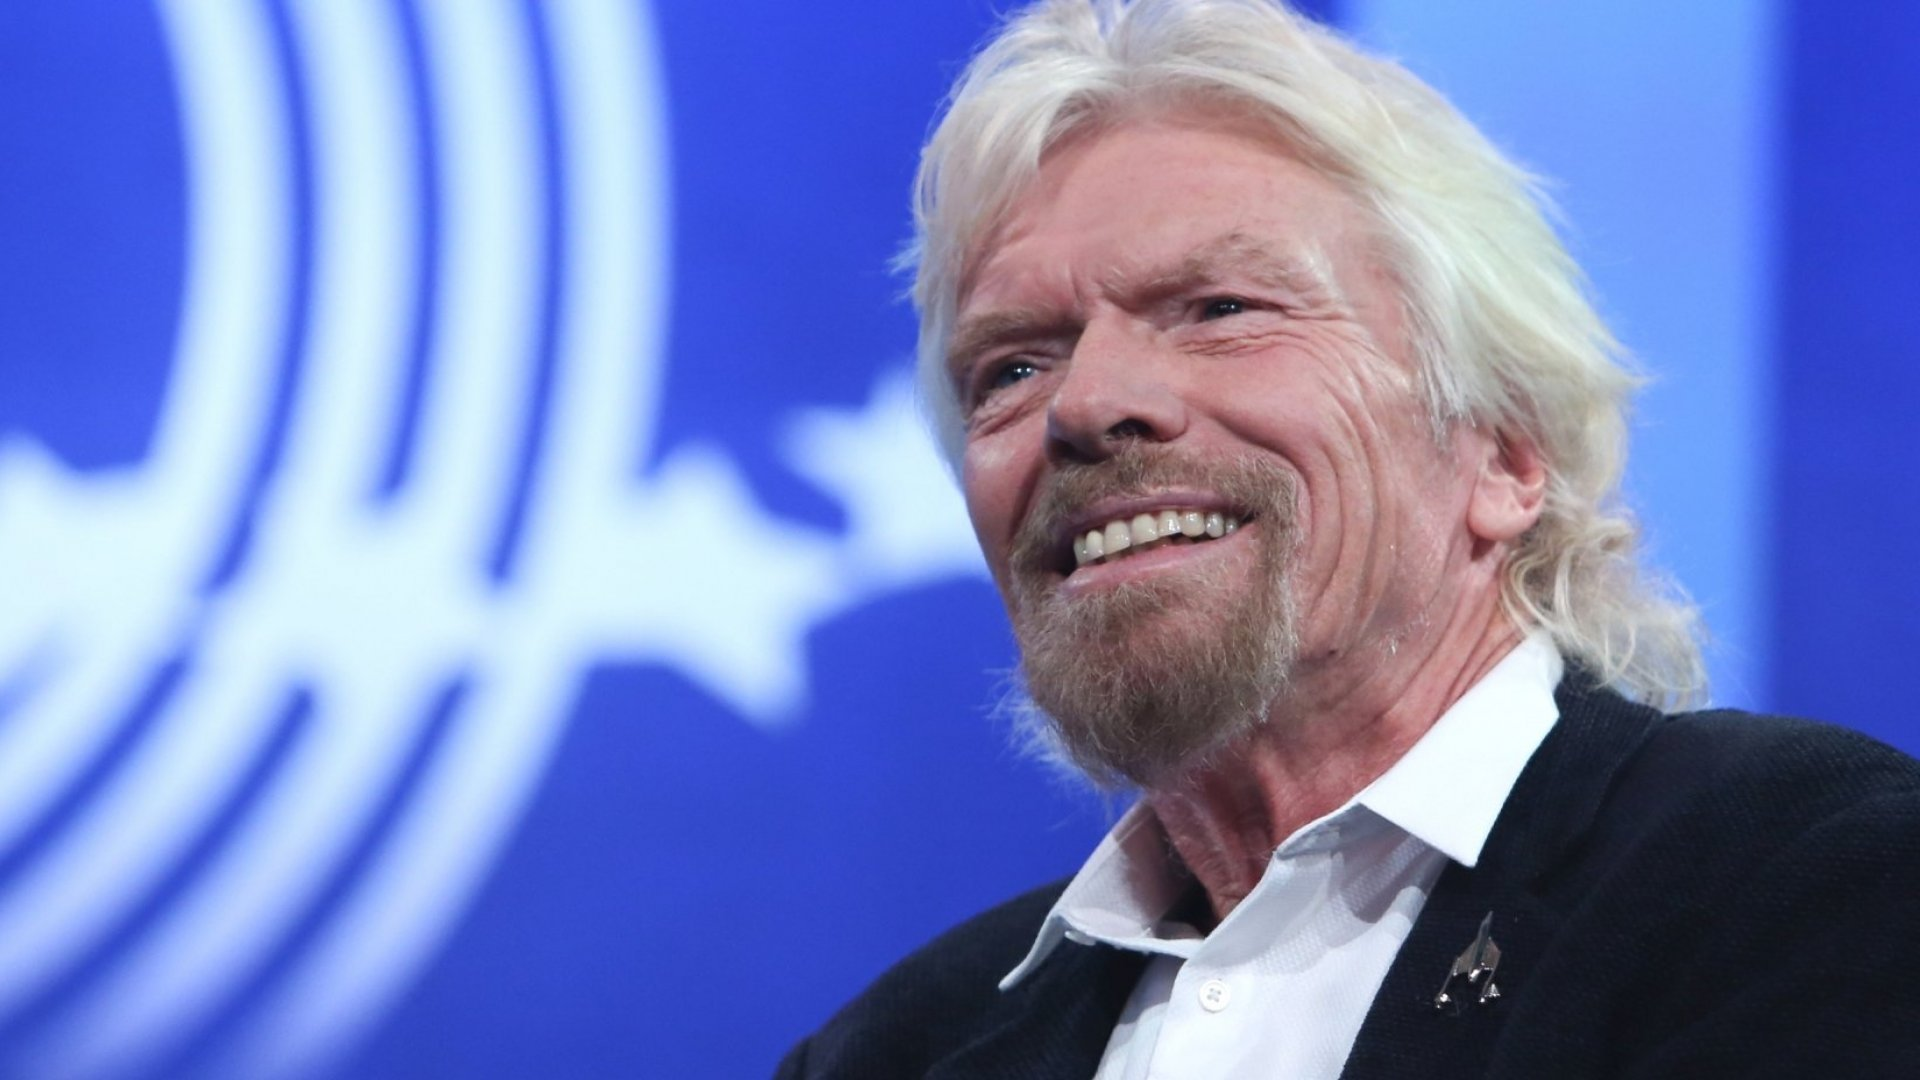 Richard Branson Taps Into a 400,000-Year-Old Practice to Unleash His Best Ideas. You Can, Too